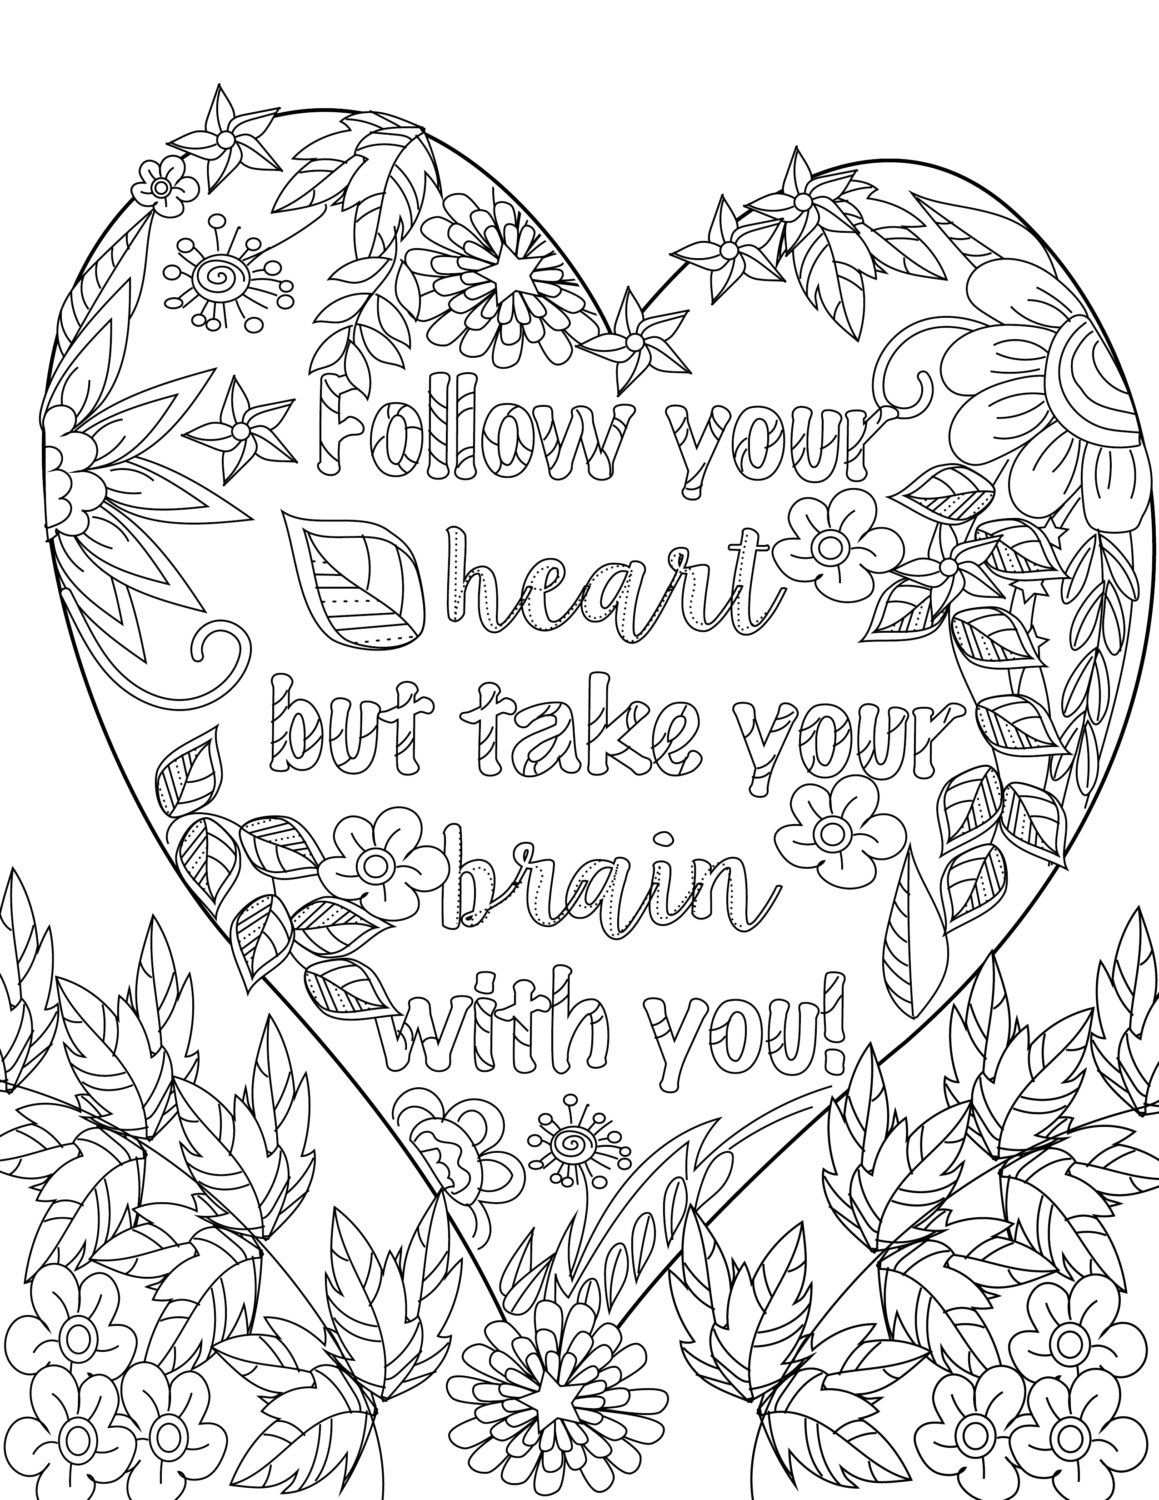 Pin By Tammy Wichelow On Colouring Quote Coloring Pages